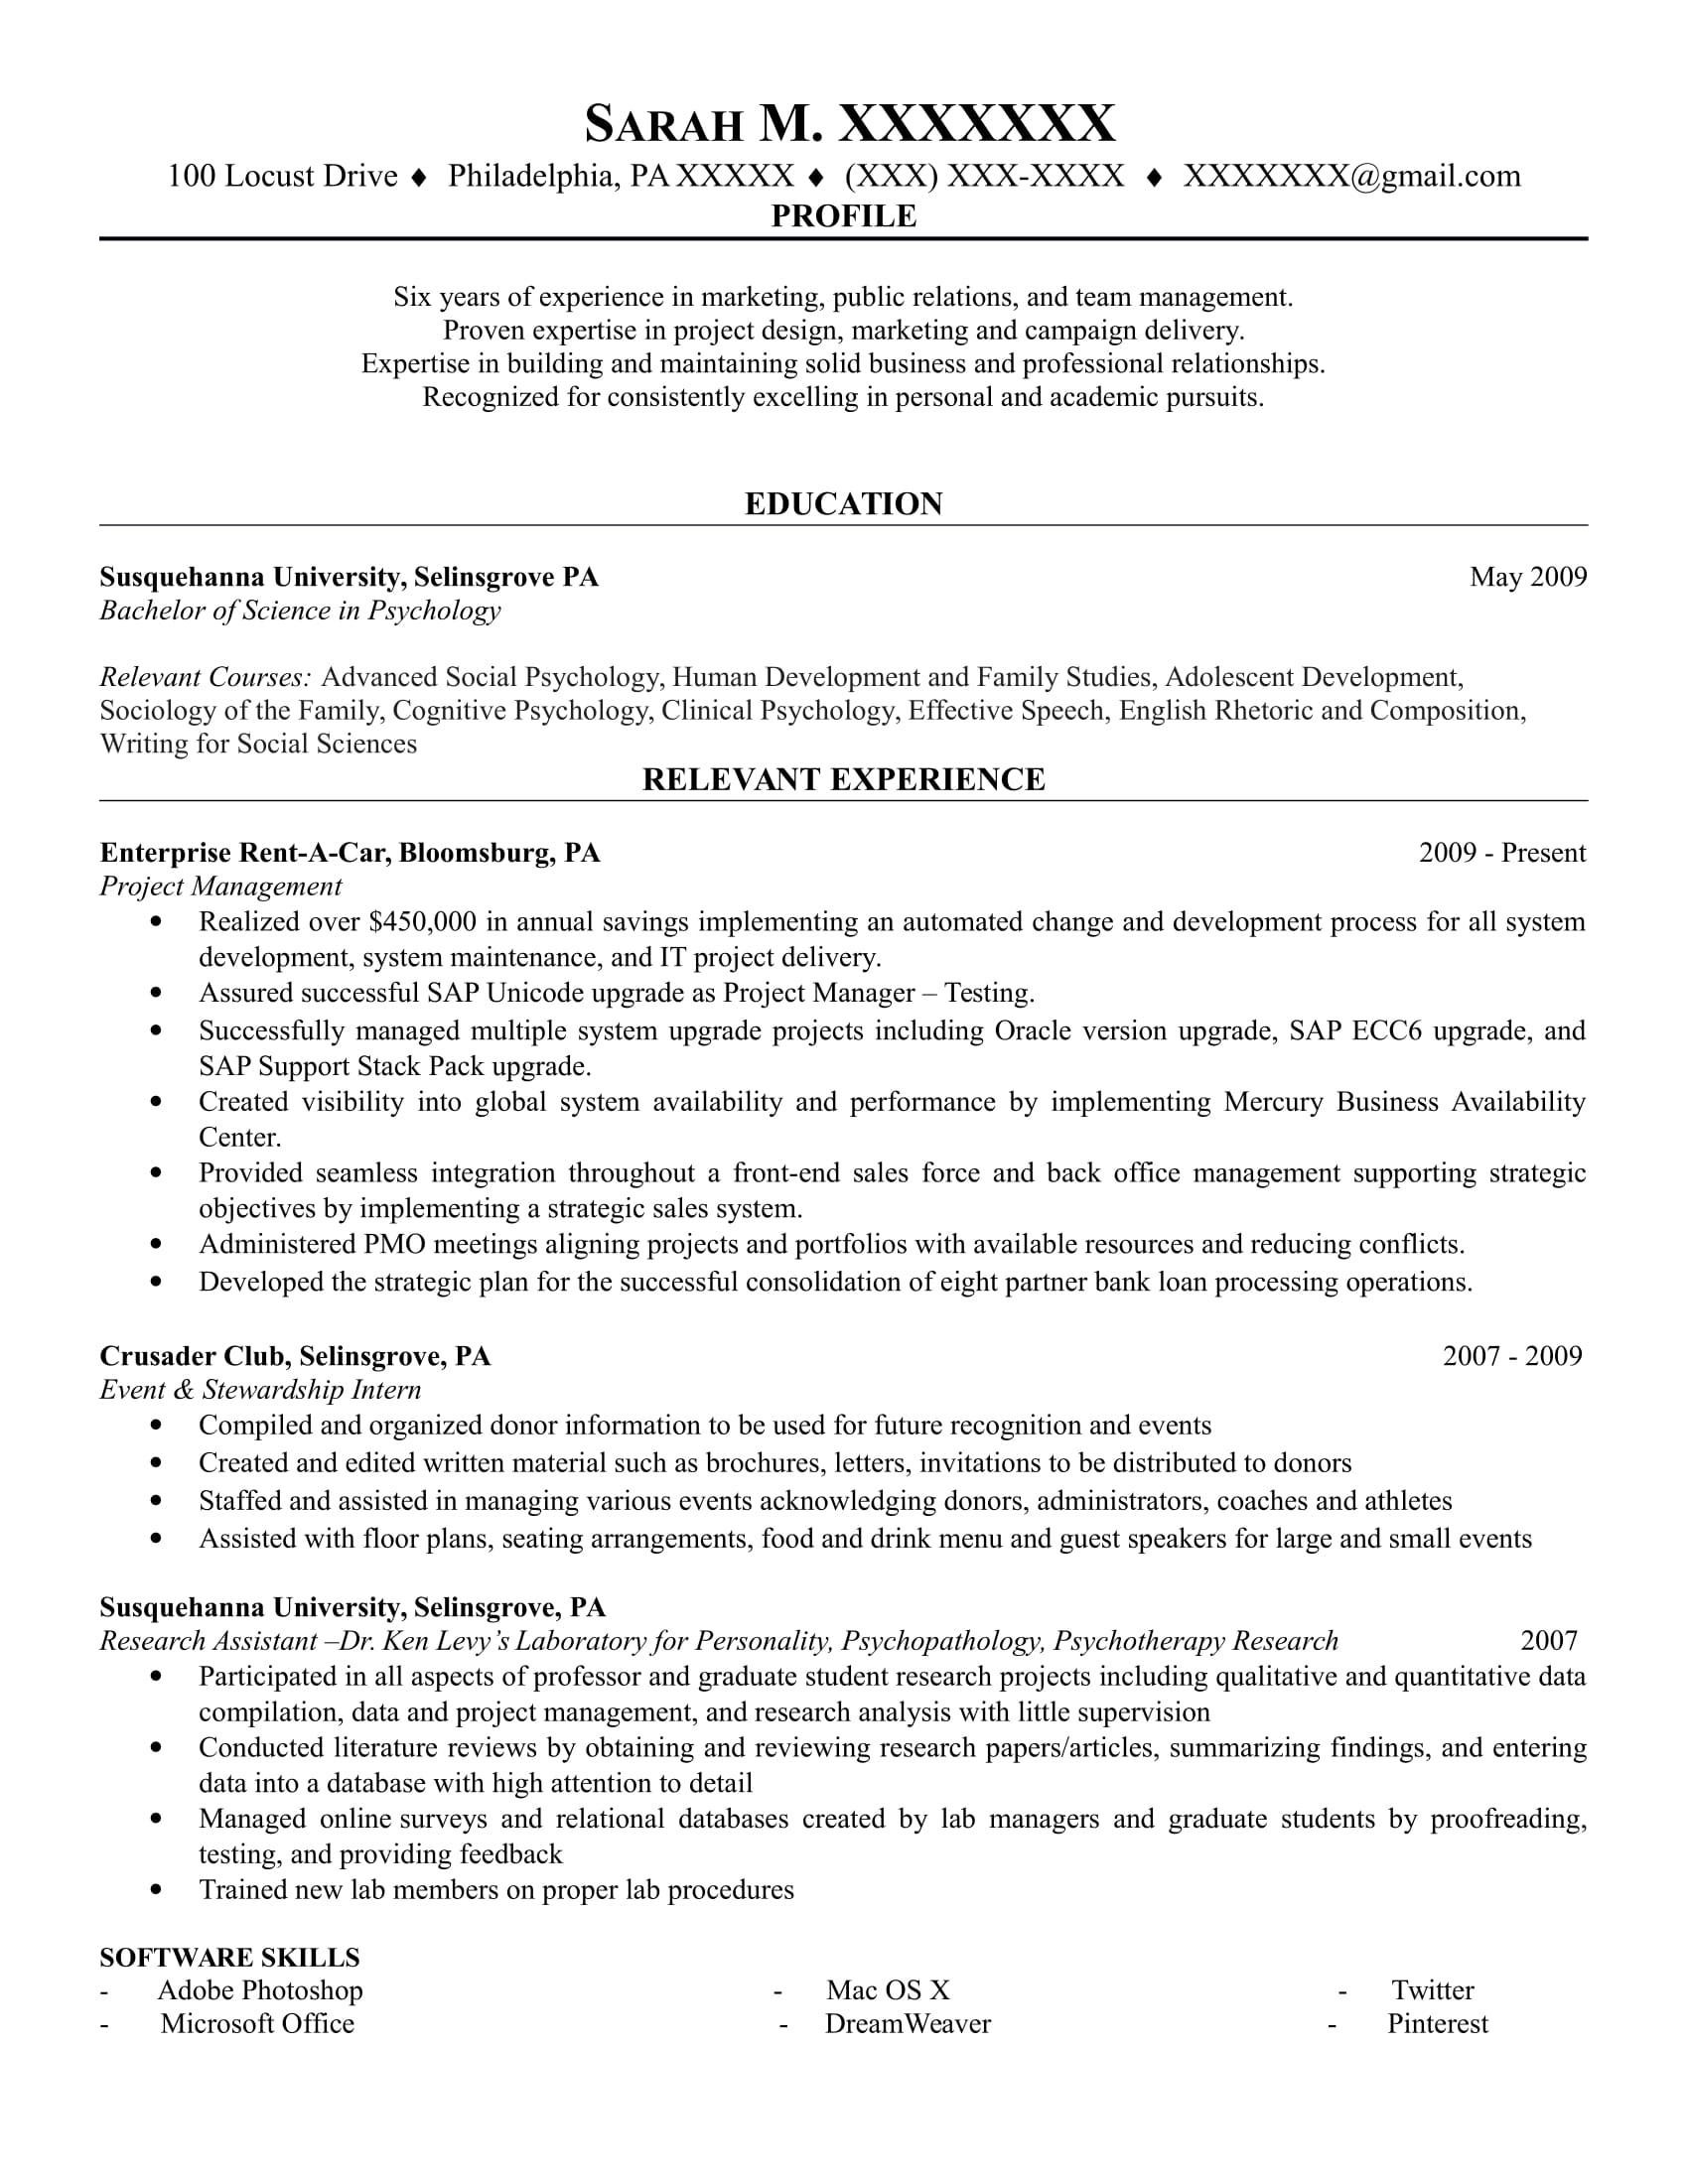 top resume writing services best in professional sample for internship template microsoft Resume Professional Resume Writing Services Philadelphia